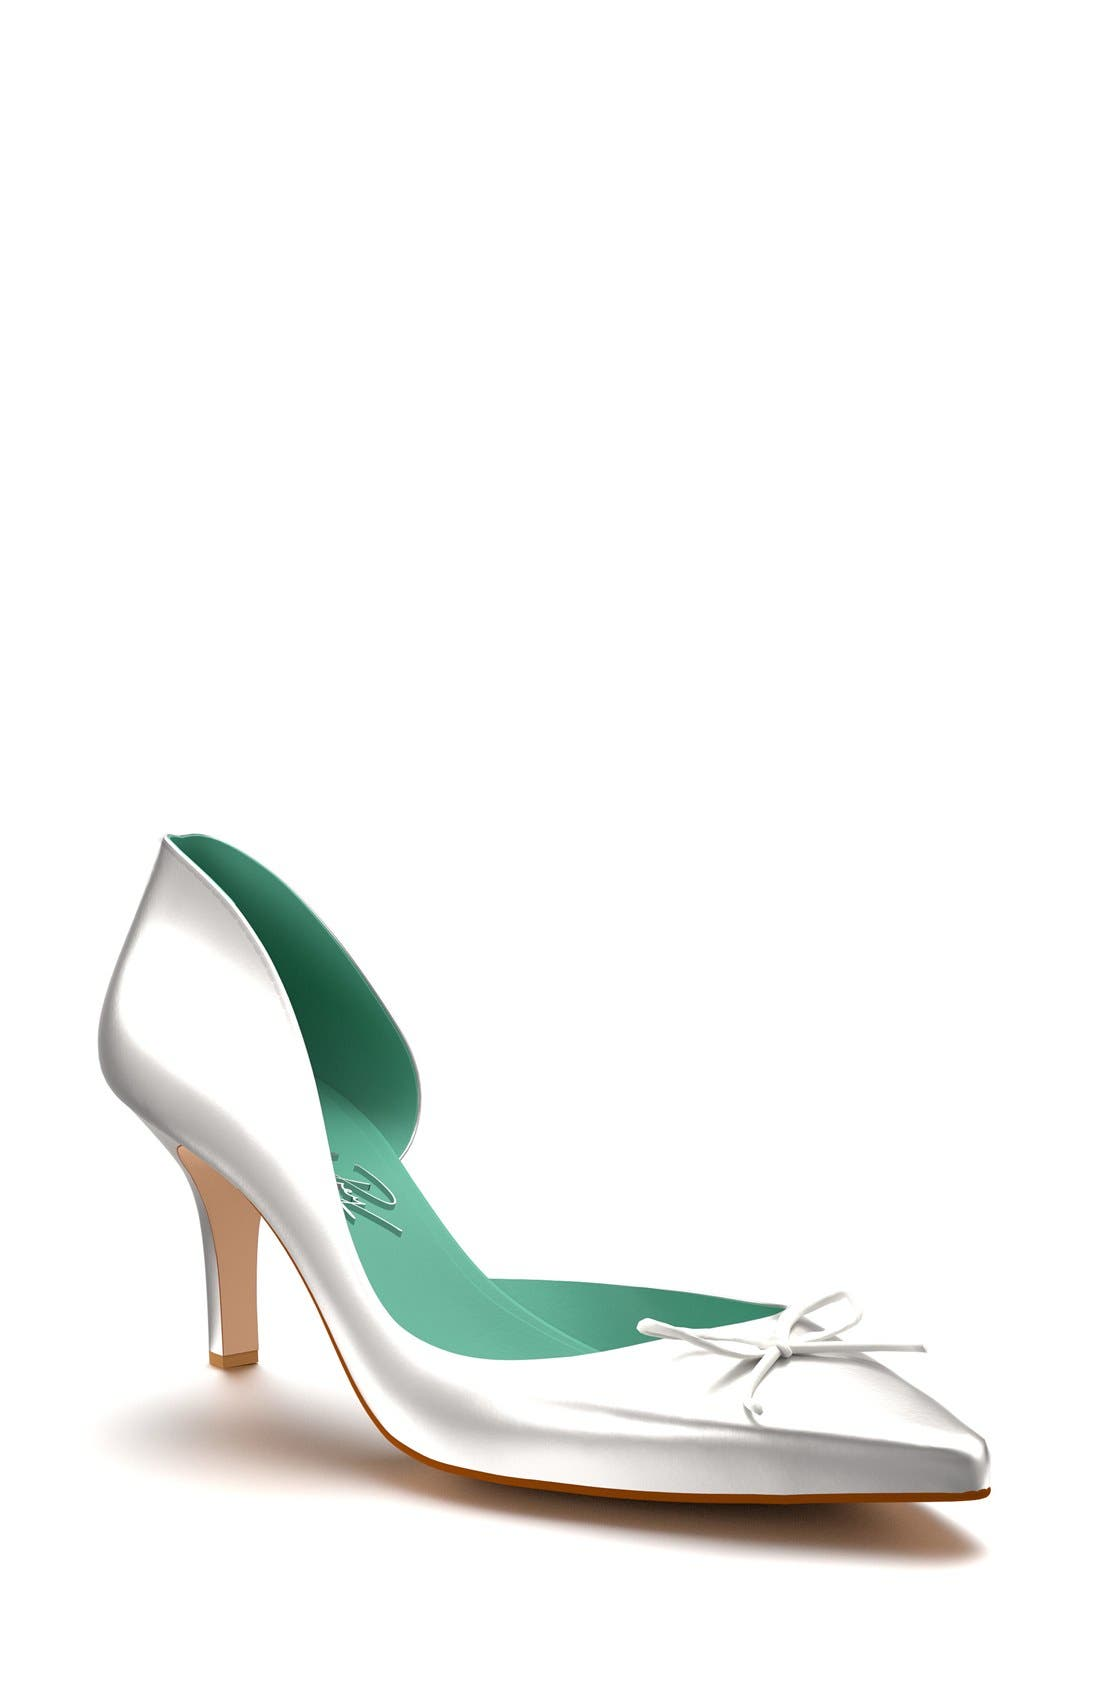 Main Image - Shoes of Prey Pointy Toe Half d'Orsay Pump (Women)